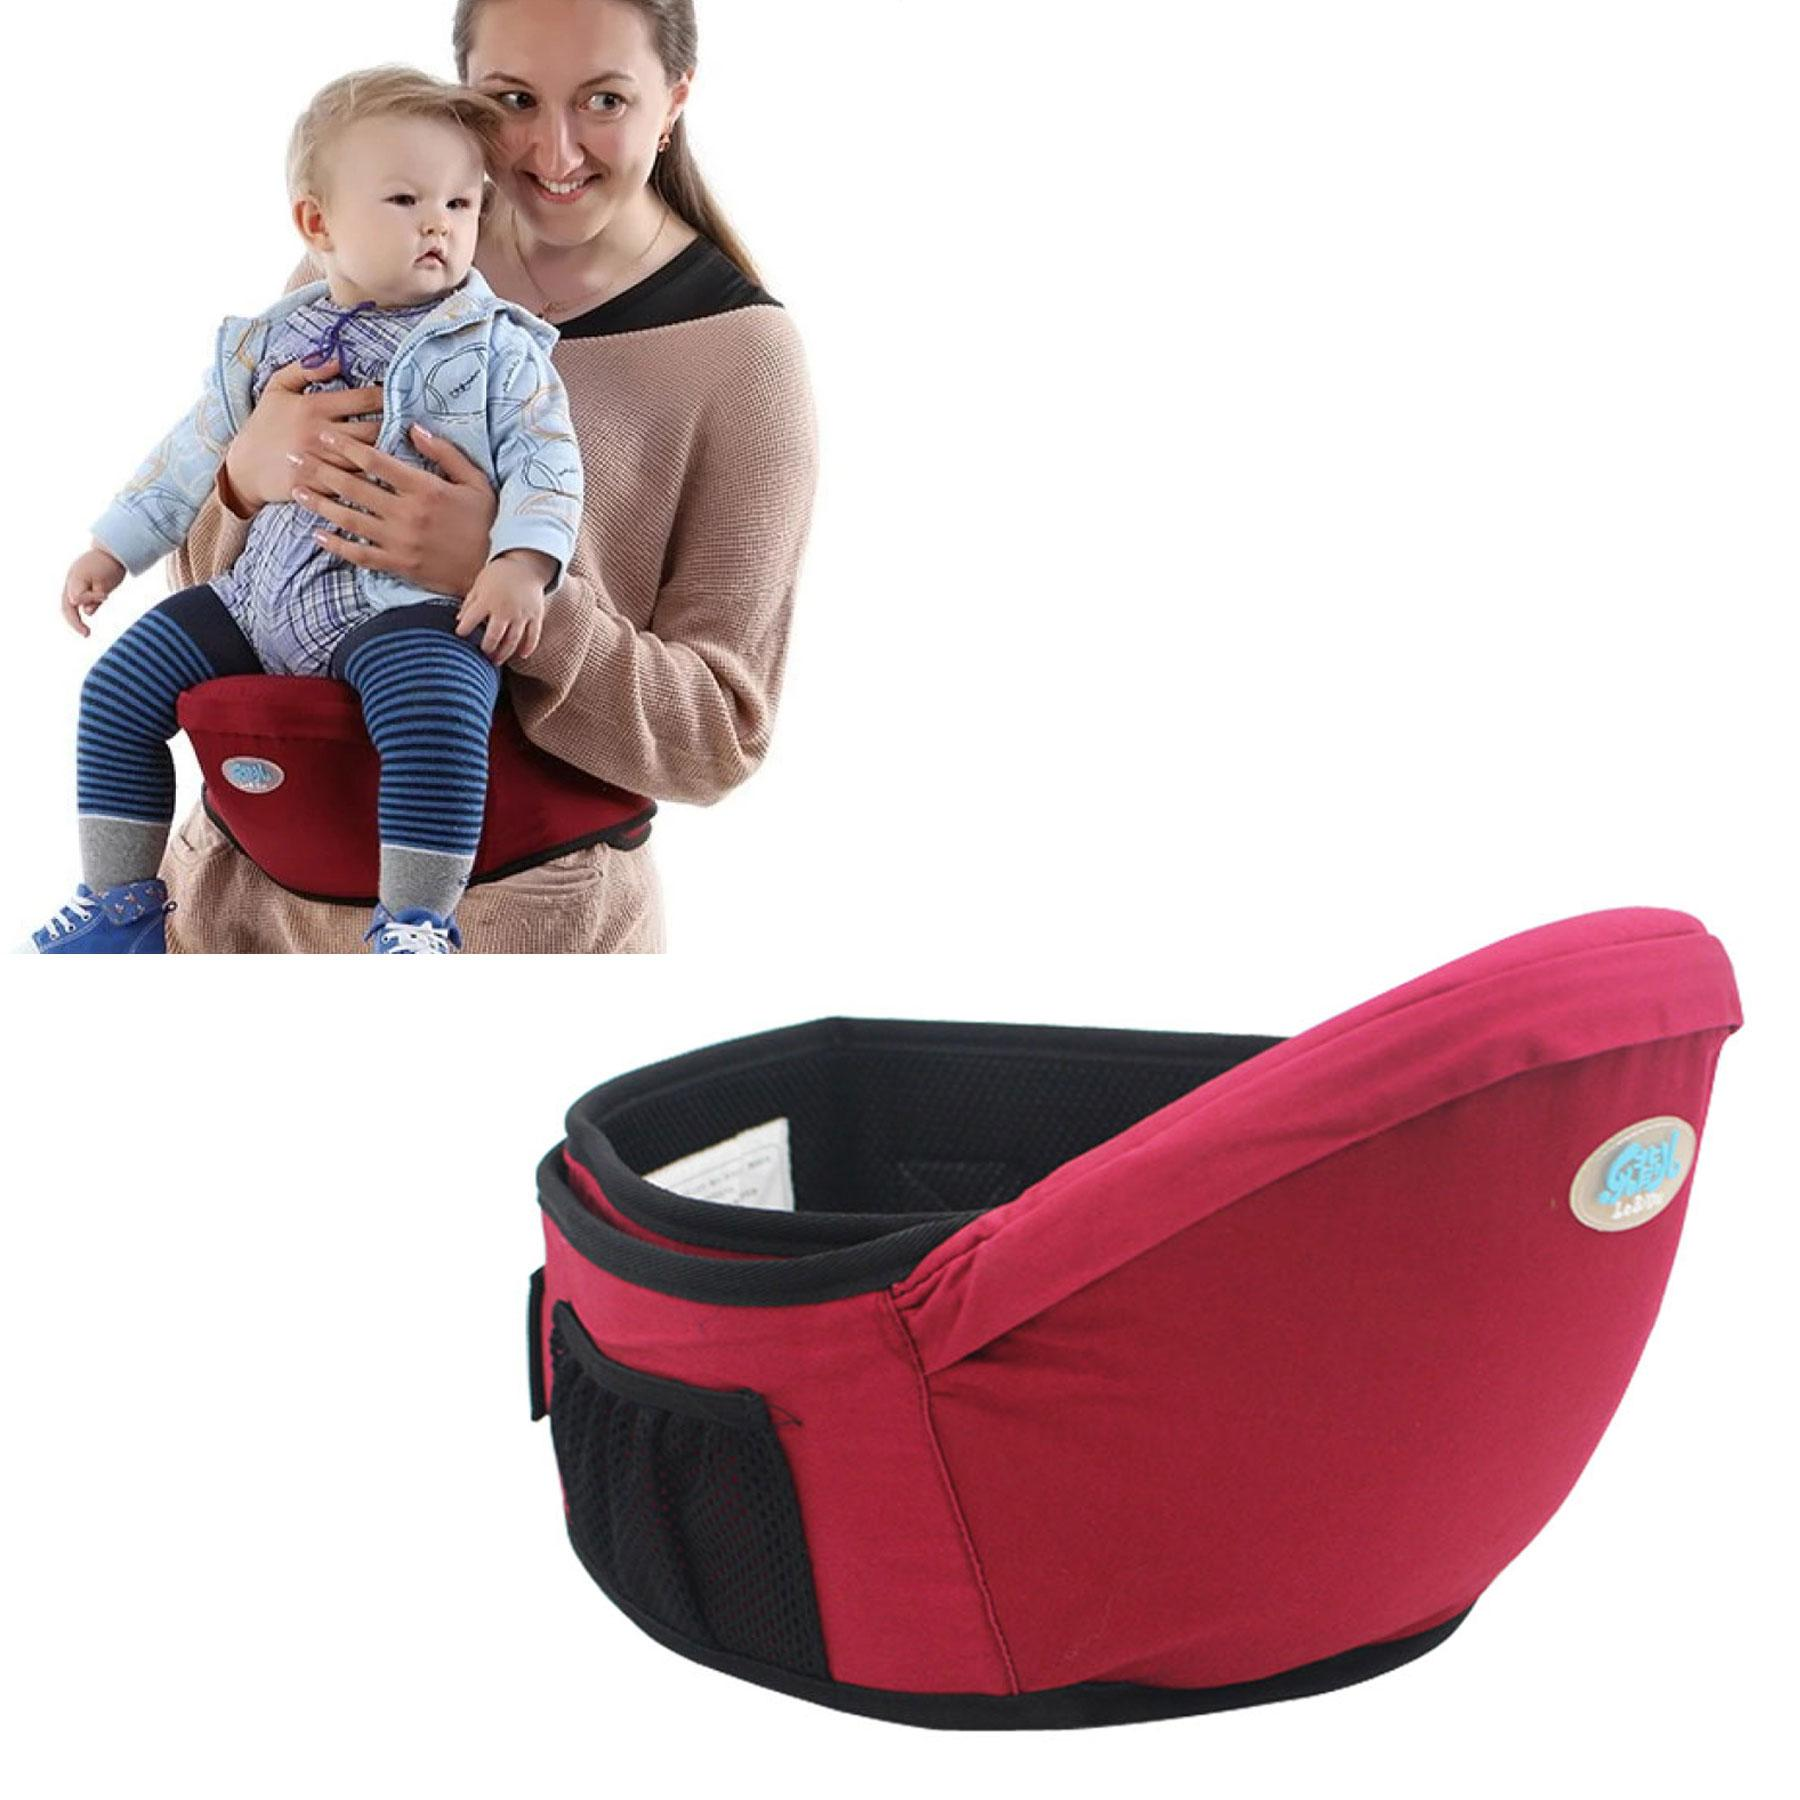 Backpacks & Carriers Mother & Kids Comfortable Breathable Baby Carrier Sling Cotton Hipseat Nursing Cover Infant Sling Soft Natural Wrap Ergonomic Carrier Backpack Large Assortment